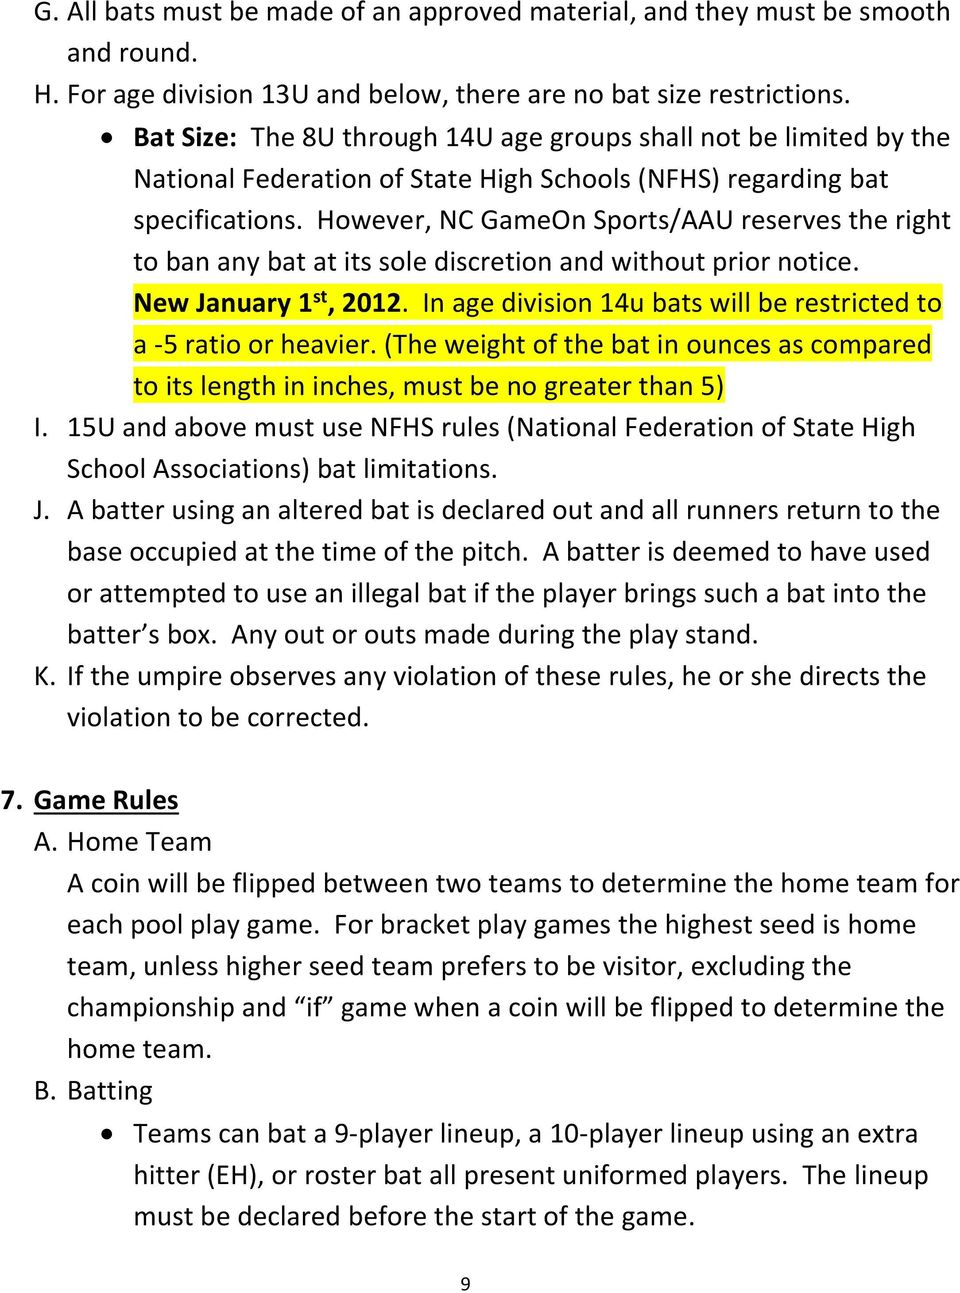 However, NC GameOn Sports/AAU reserves the right to ban any bat at its sole discretion and without prior notice. New January 1 st, 2012.